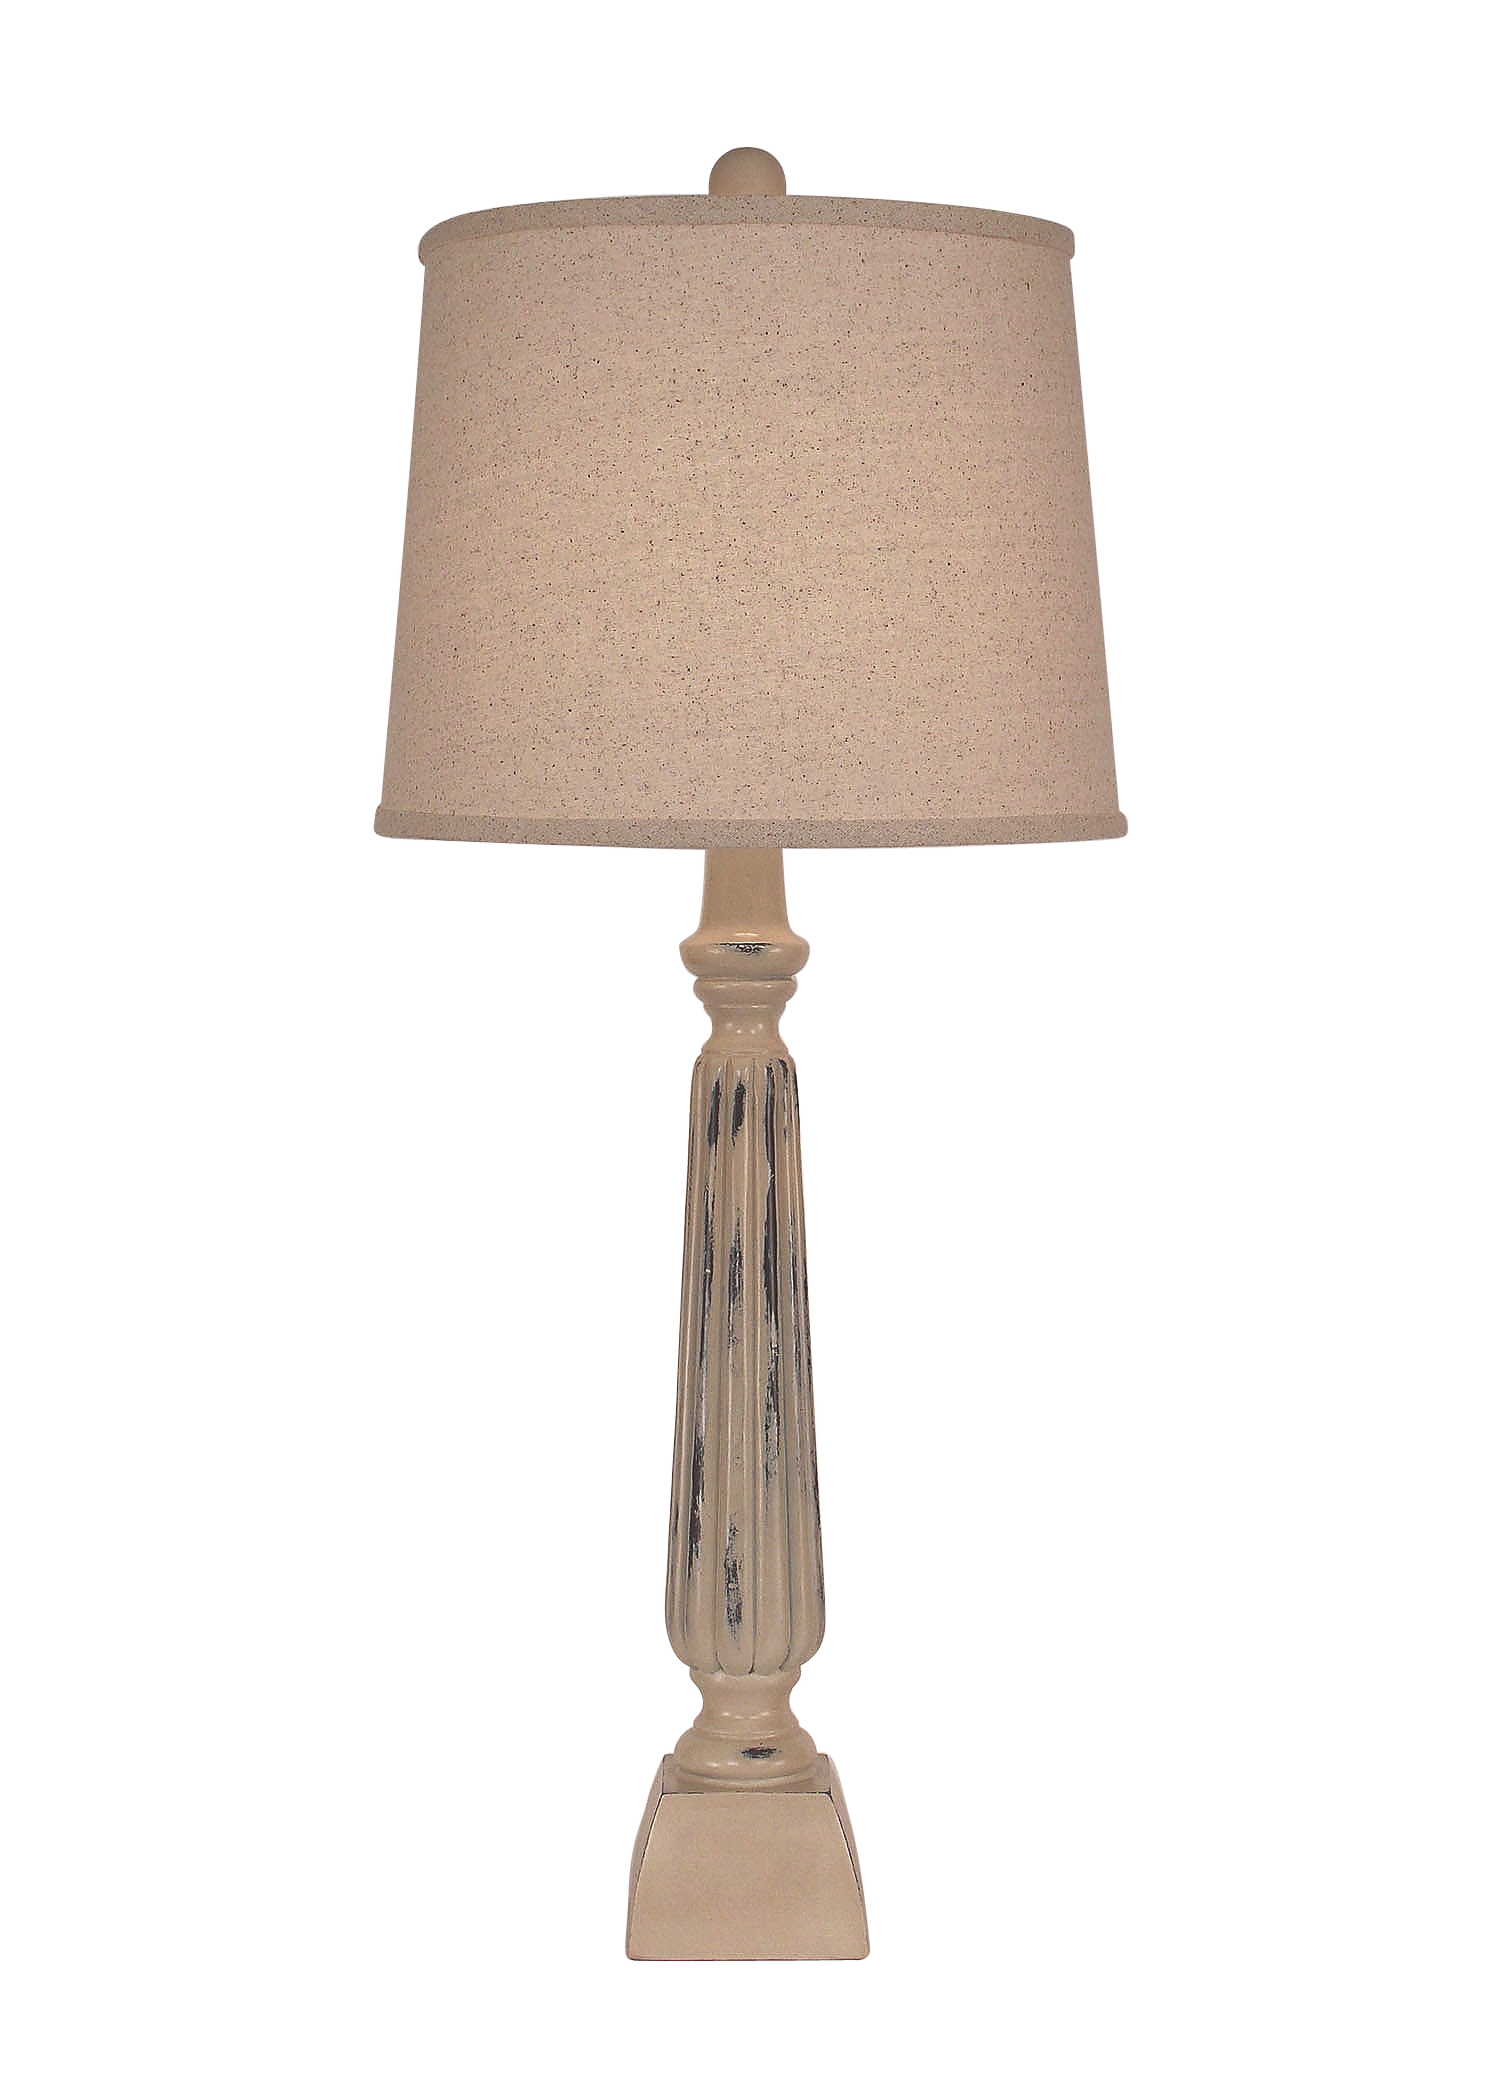 Distressed Cottage Ribbed Candlestick Table Lamp - Coast Lamp Shop